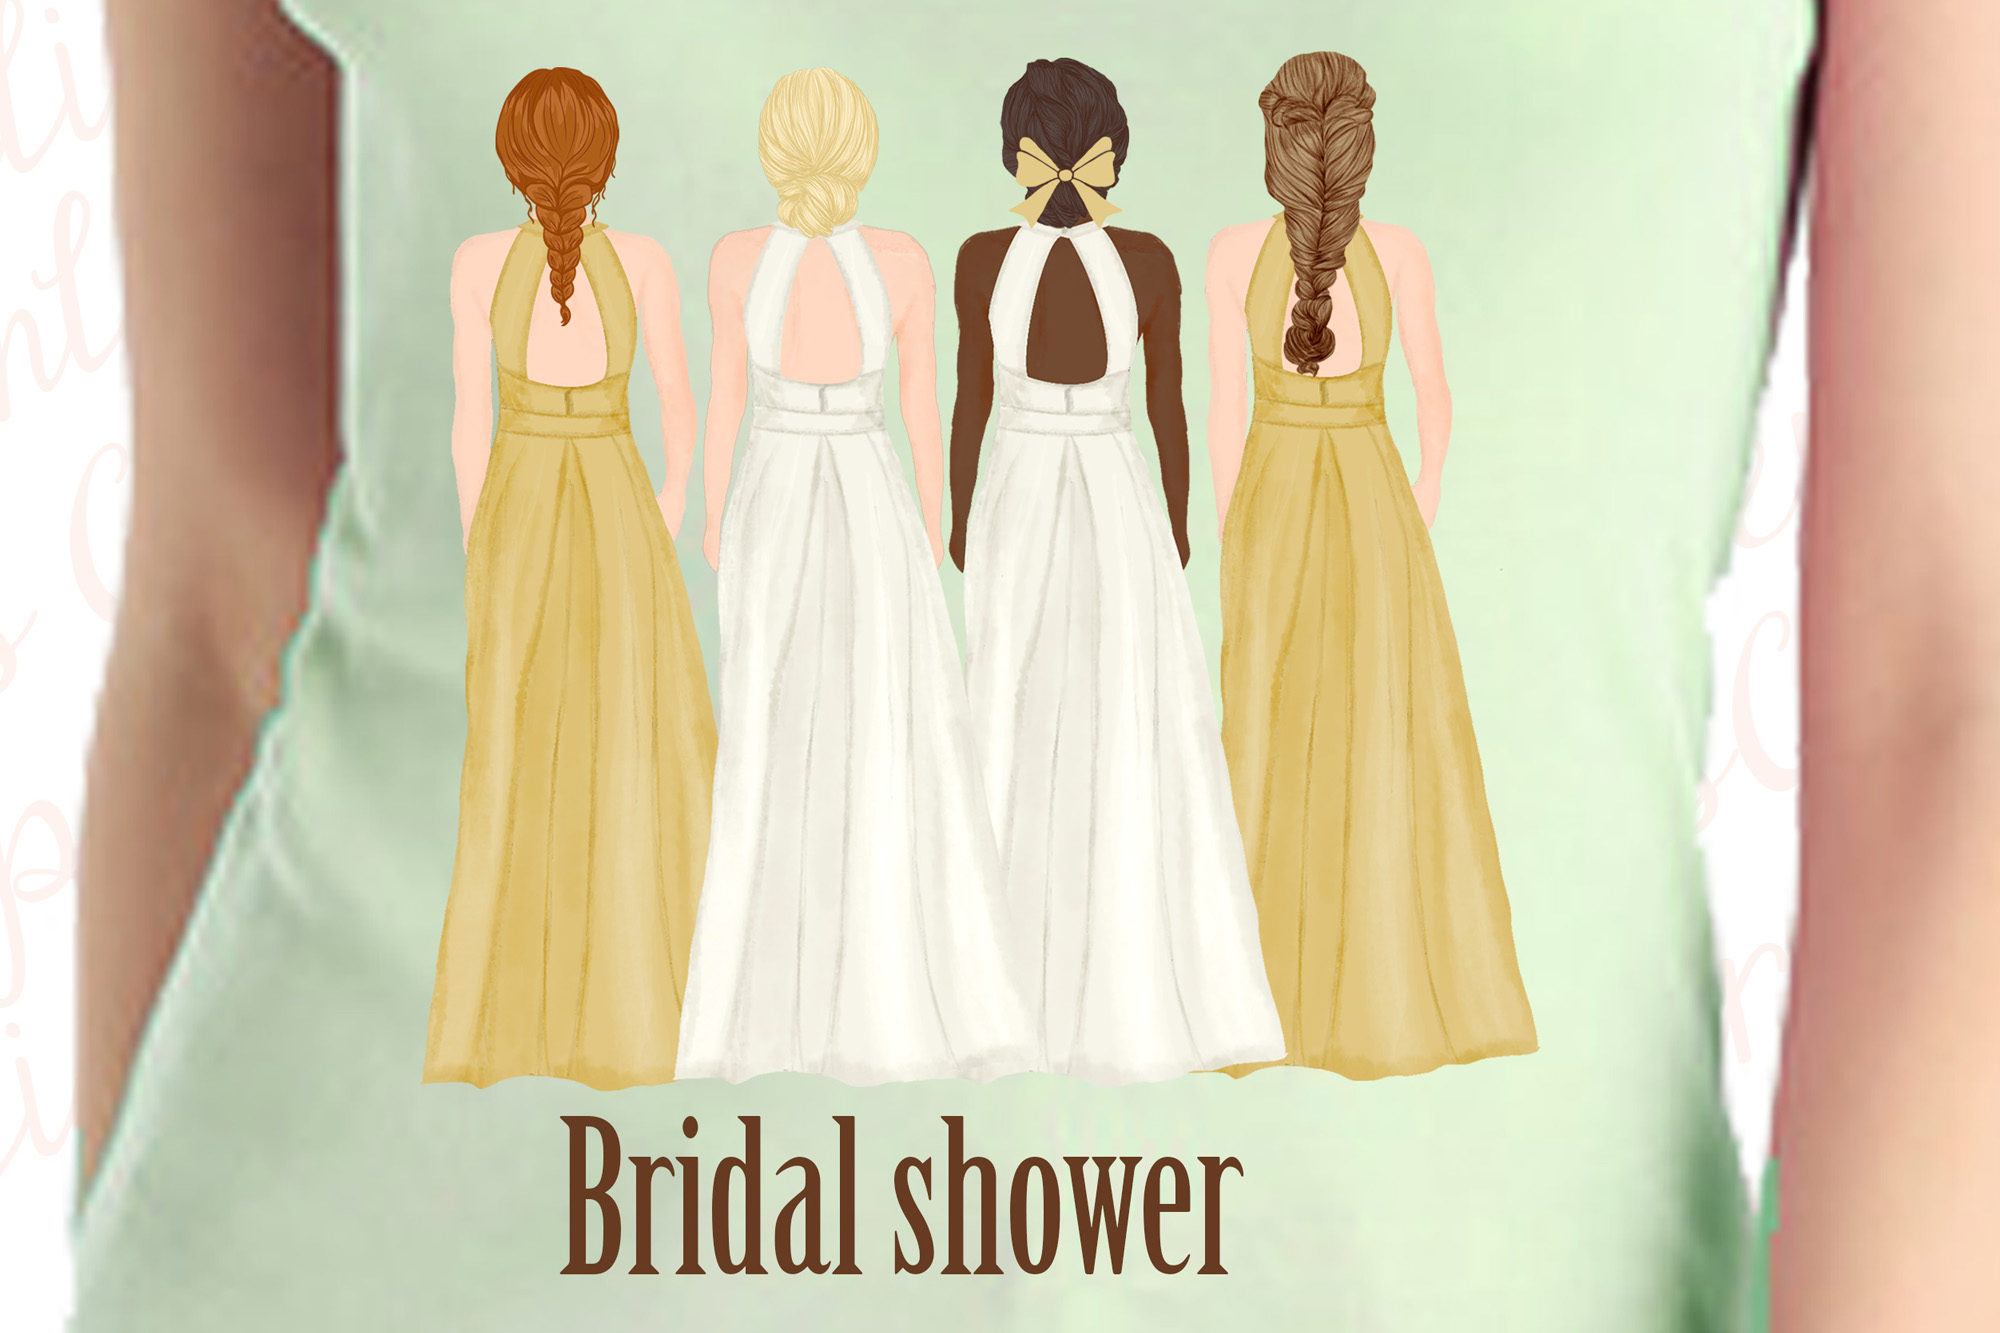 Bride and Bridesmaids clipart,Wedding clipart,Bridal clipart example image 4